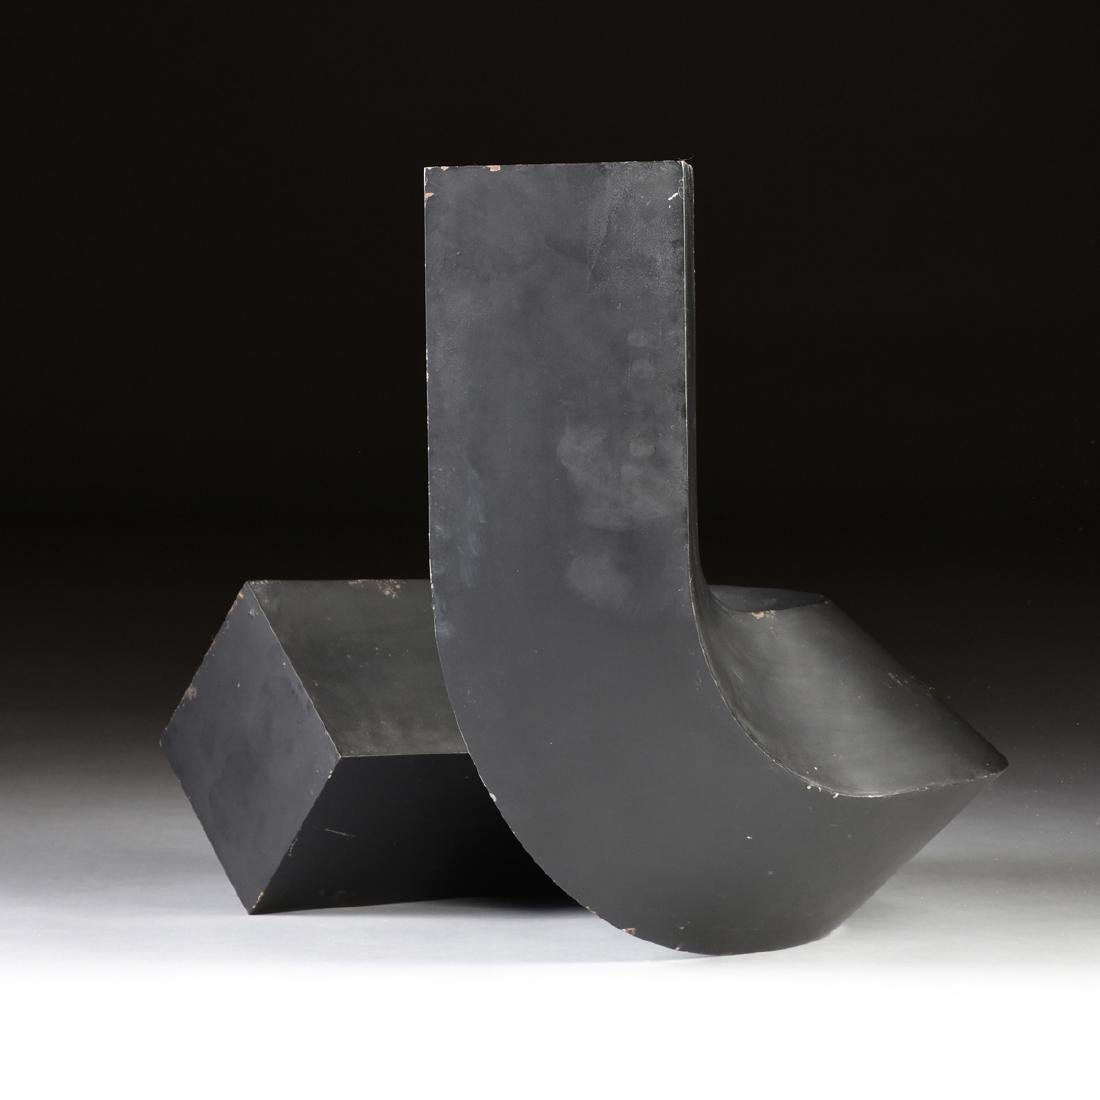 CLEMENT MEADMORE (American/Australian 1929-2005) A - 3